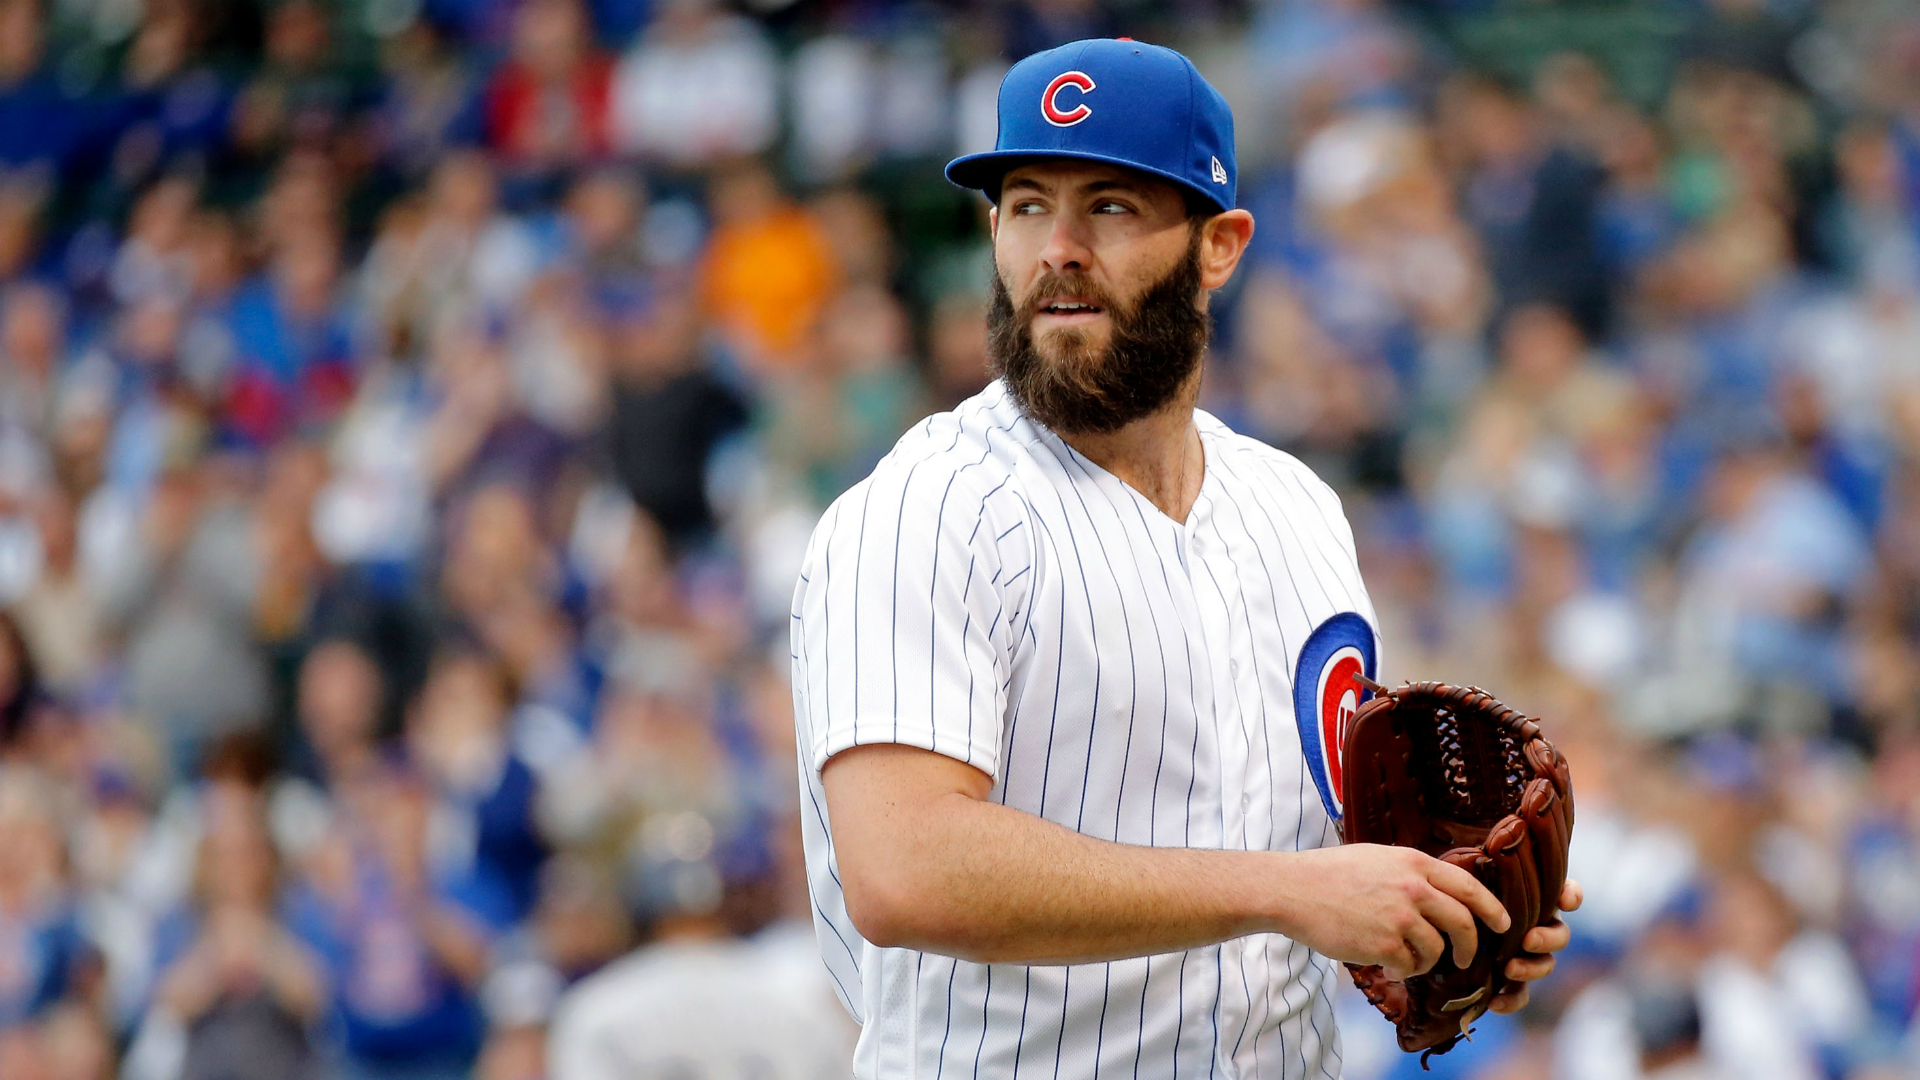 MLB free agent rumors: Brewers interested in market's top starting pitchers